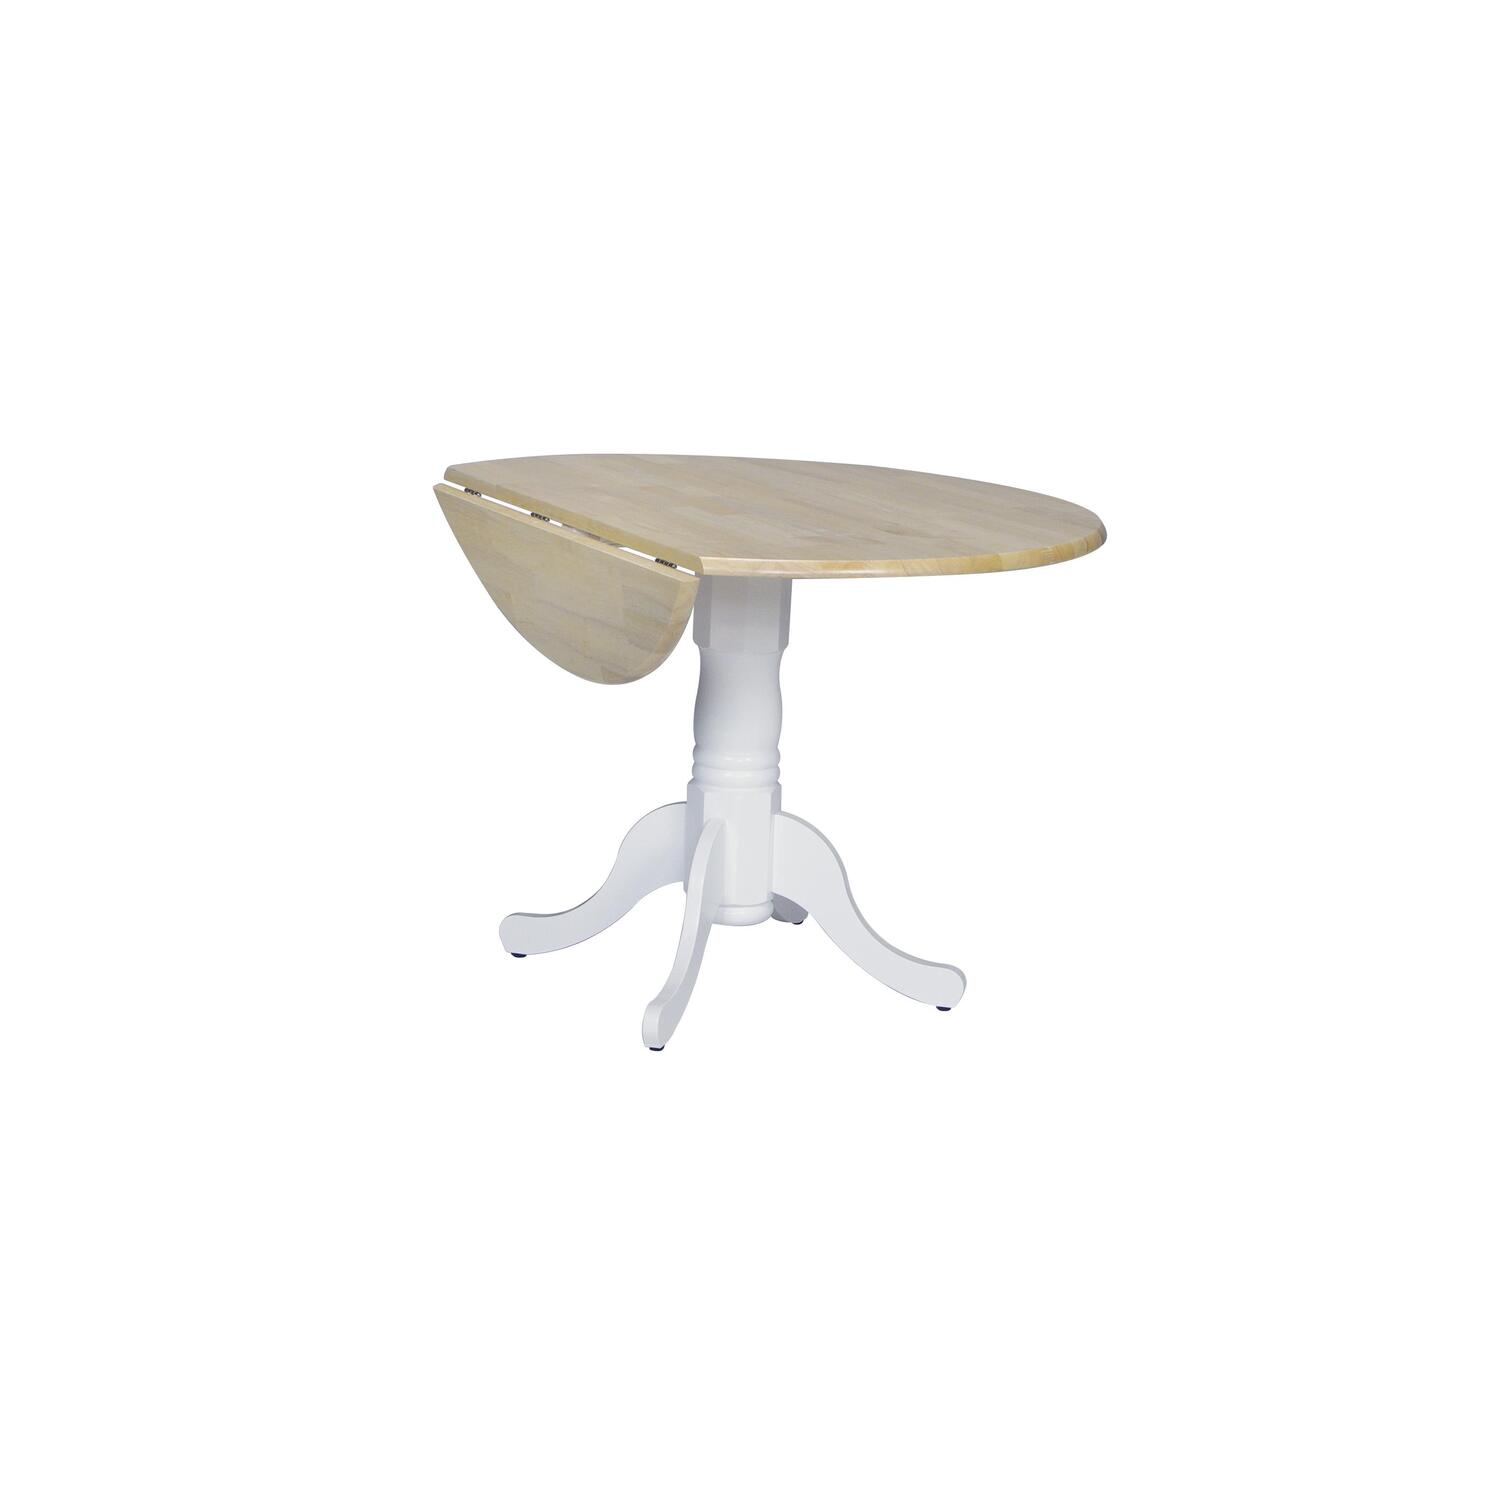 International Concepts 42 Round Dual Drop Leaf Ped Table By OJ Commerce